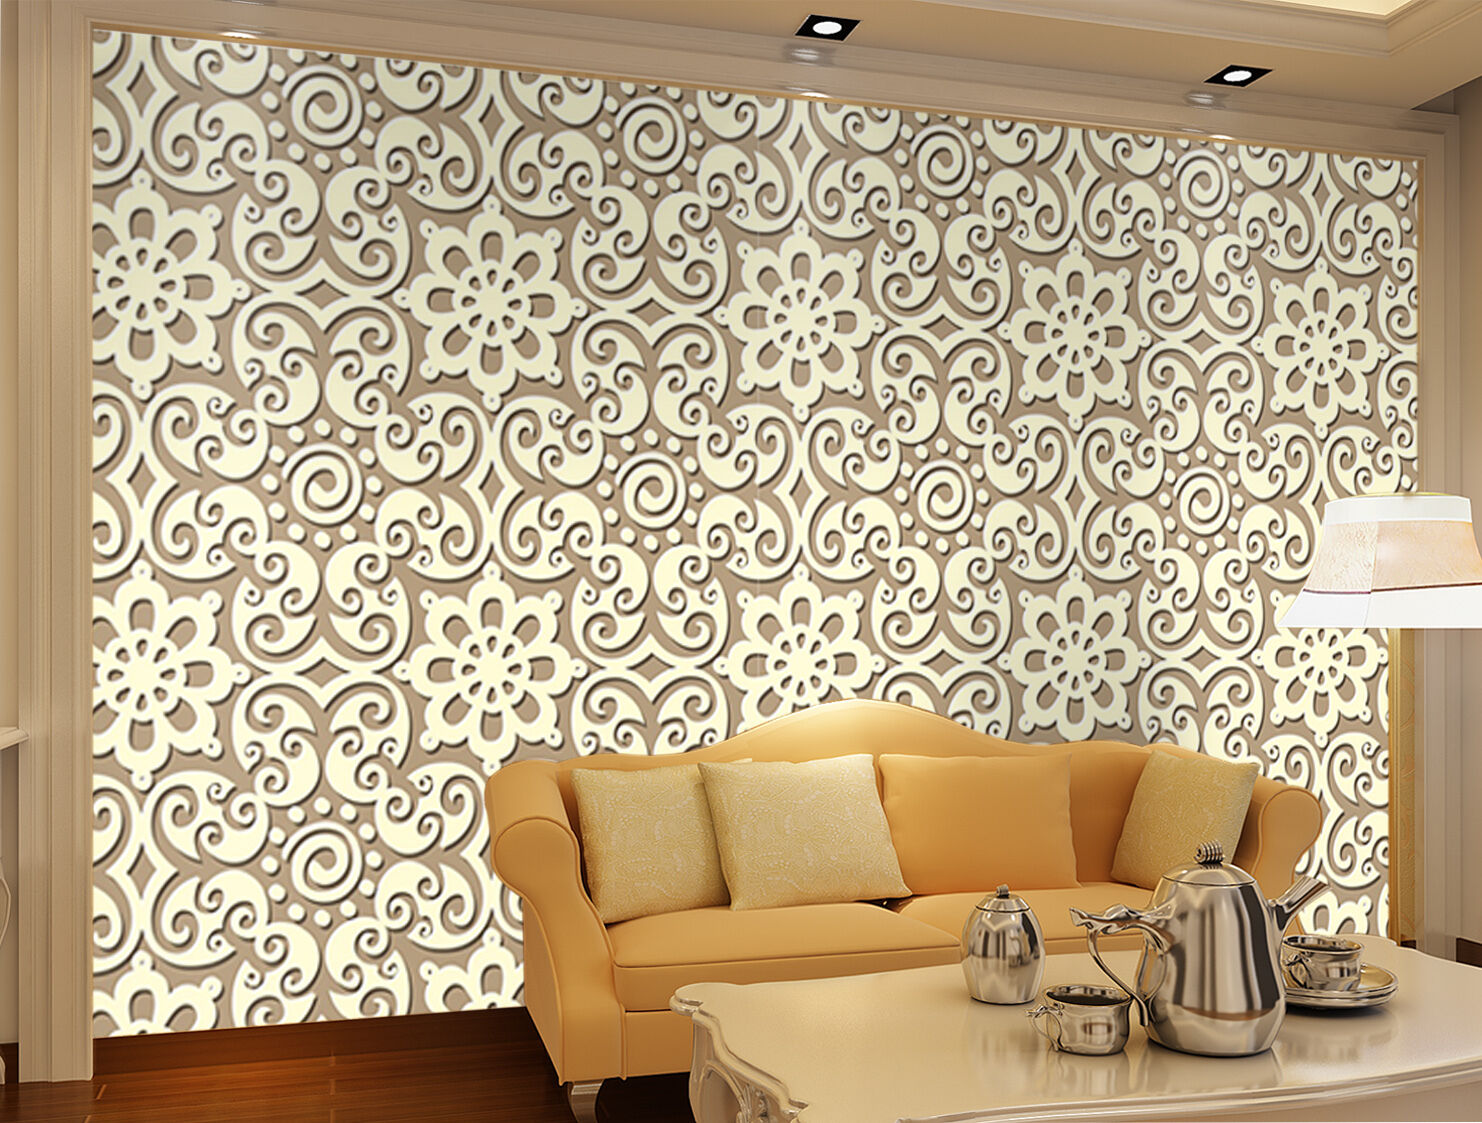 3D Flowers Patterns 1739 Paper Wall Print Wall Decal Wall Deco Indoor Murals